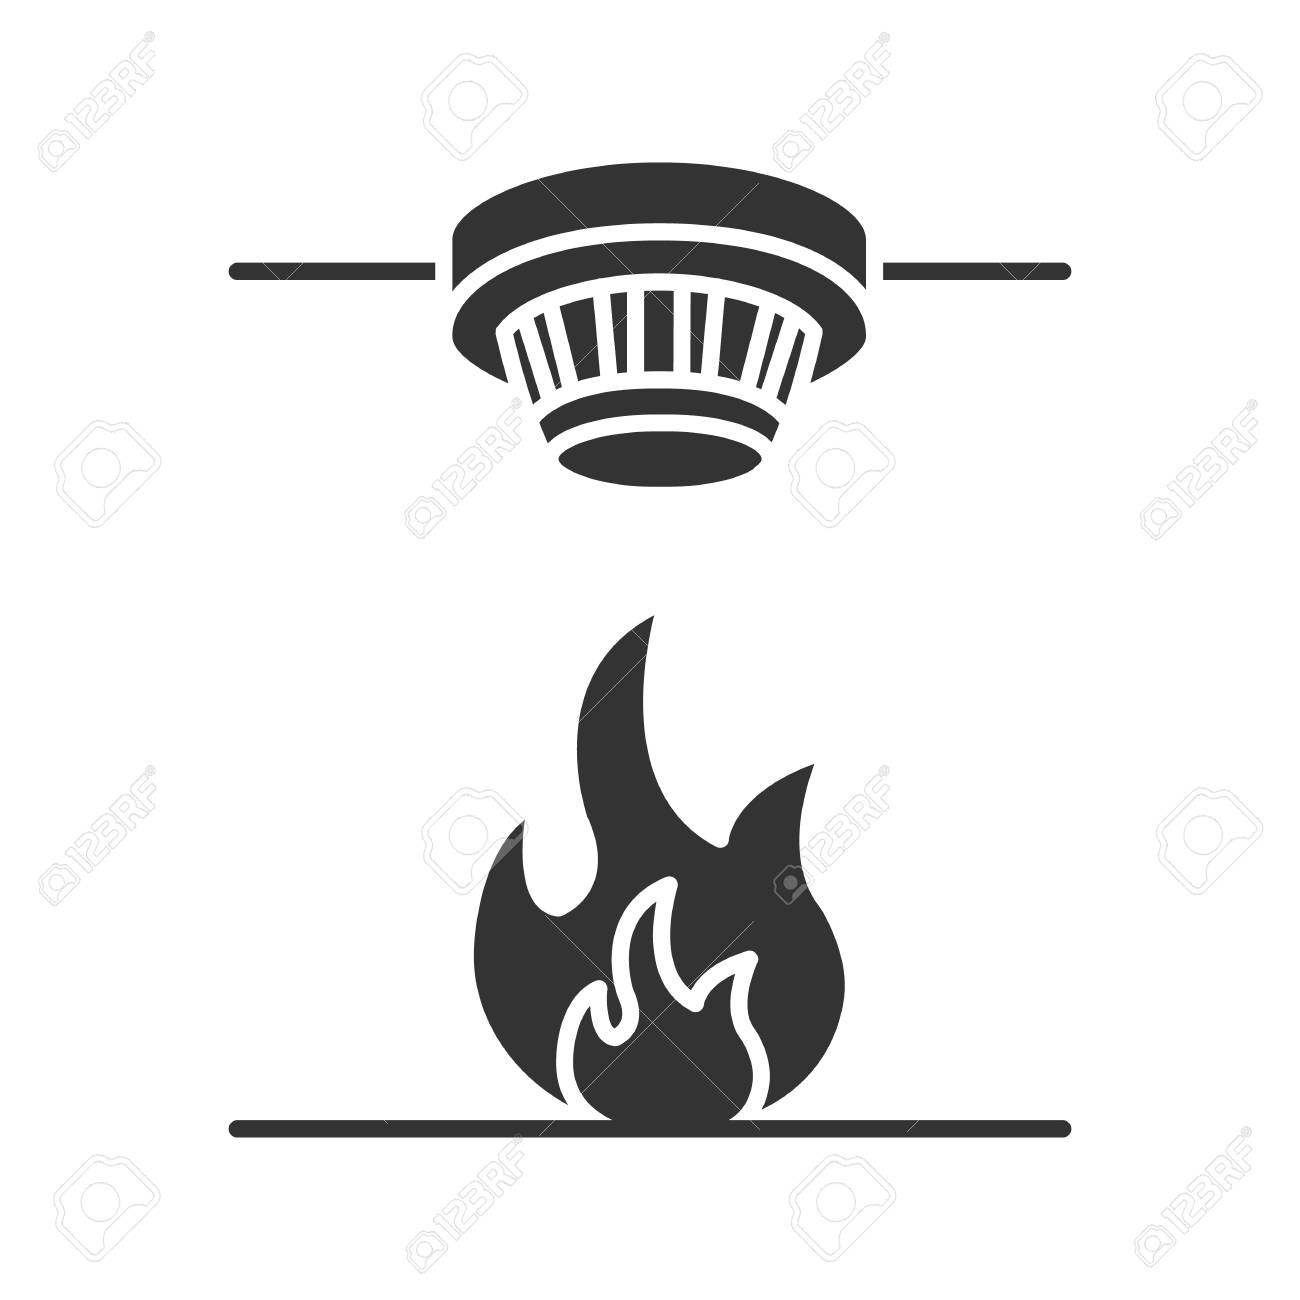 hight resolution of smoke detector glyph icon fire alarm system silhouette symbol negative space vector